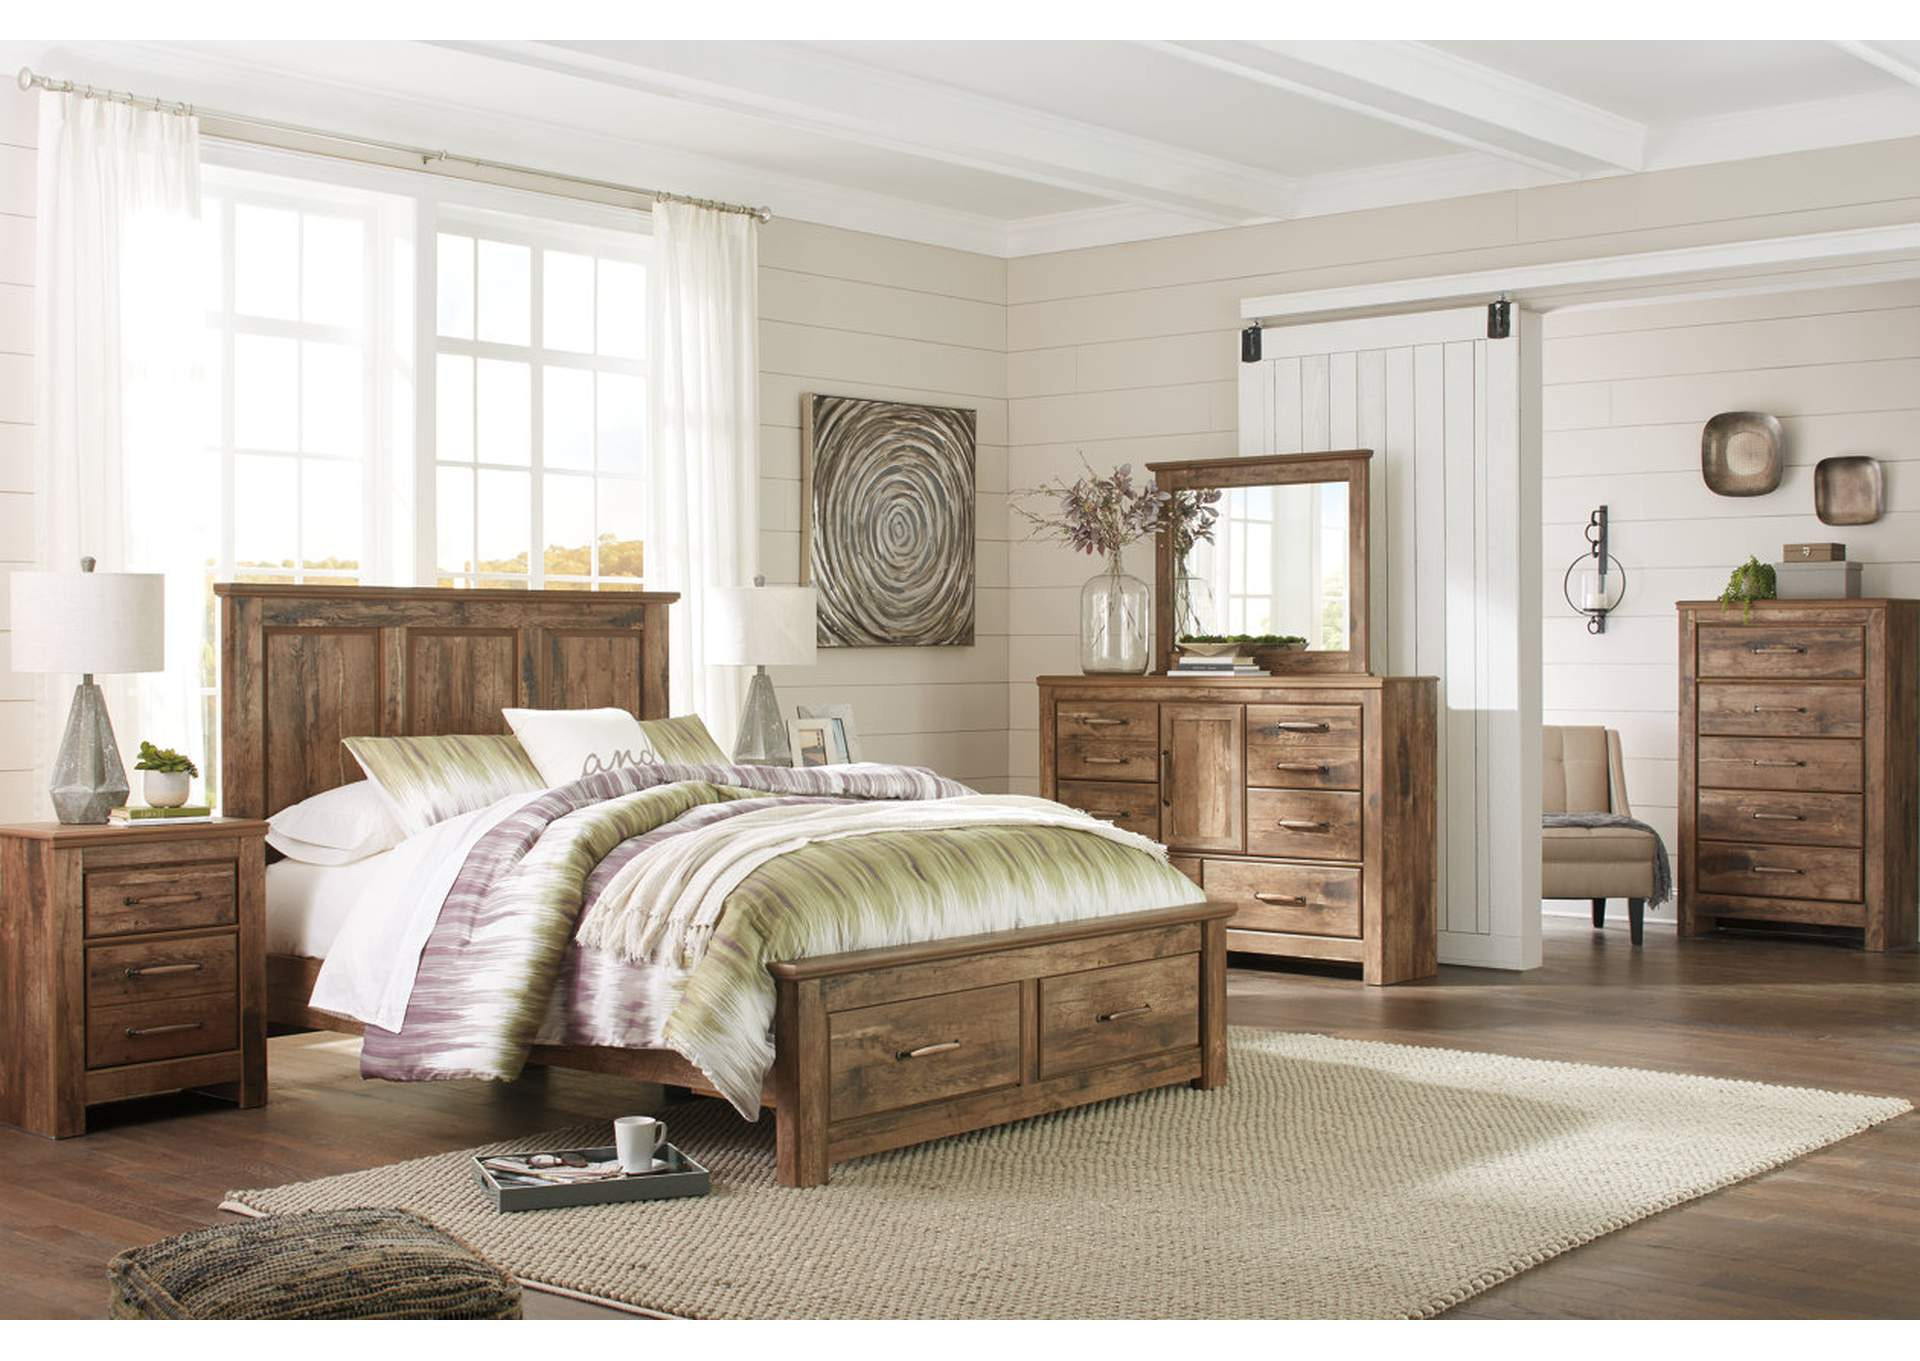 Blaneville Brown Queen Storage Platform Bed w/Dresser, Mirror, Drawer Chest & Nightstand,Signature Design By Ashley